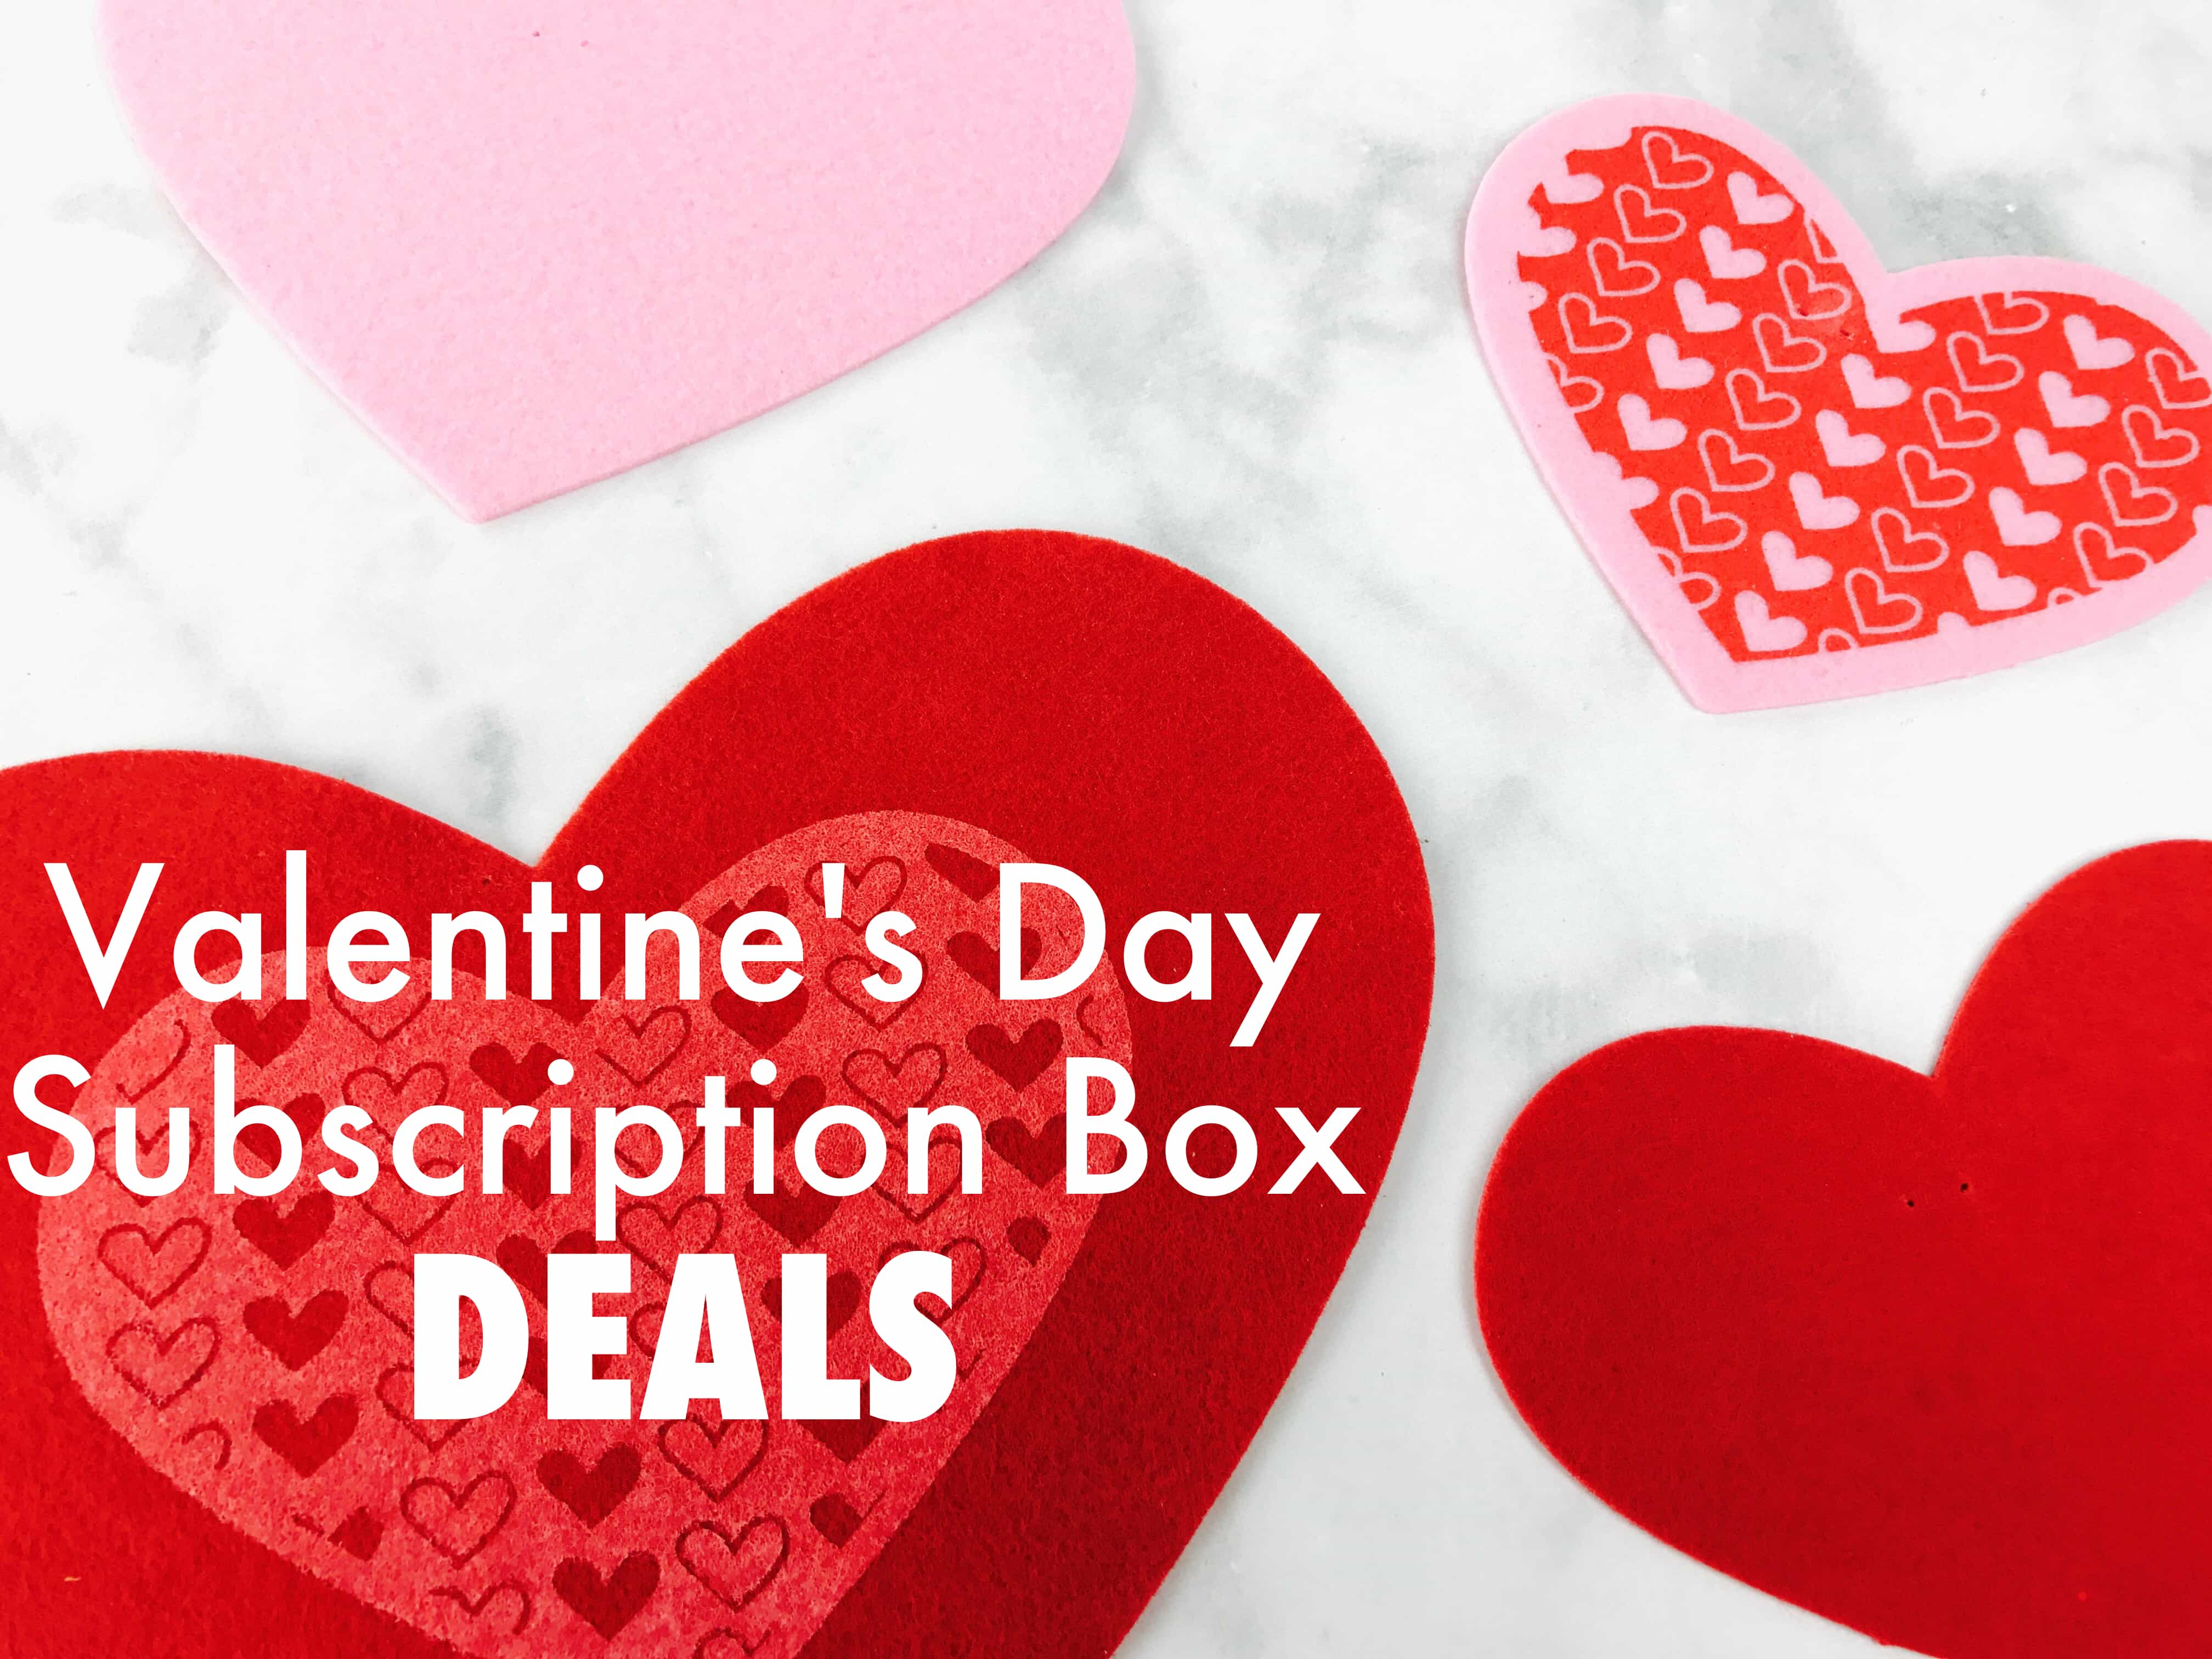 Last Call! All the Best Valentine's Day Subscription Box Deals!